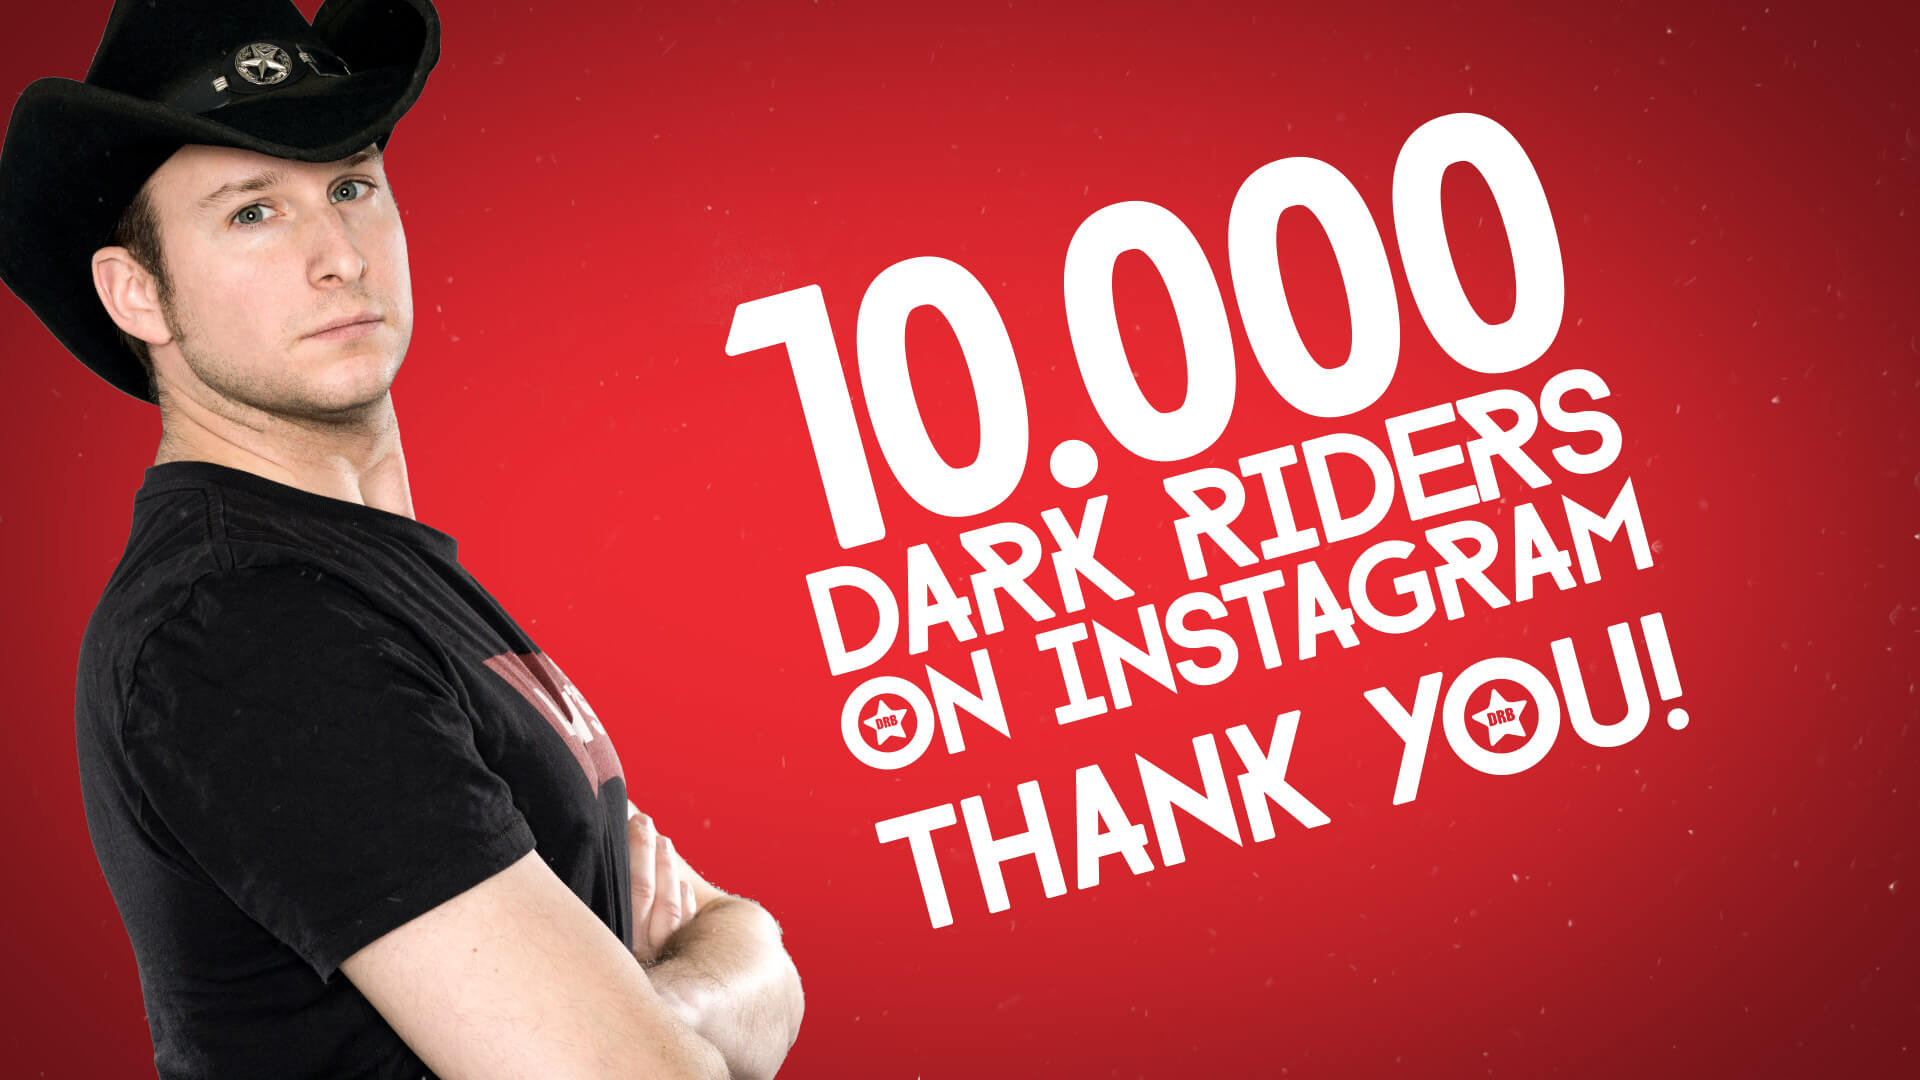 Dark Ride Blog: 10 000 Dark Riders on Instagram (Sven Langbein)